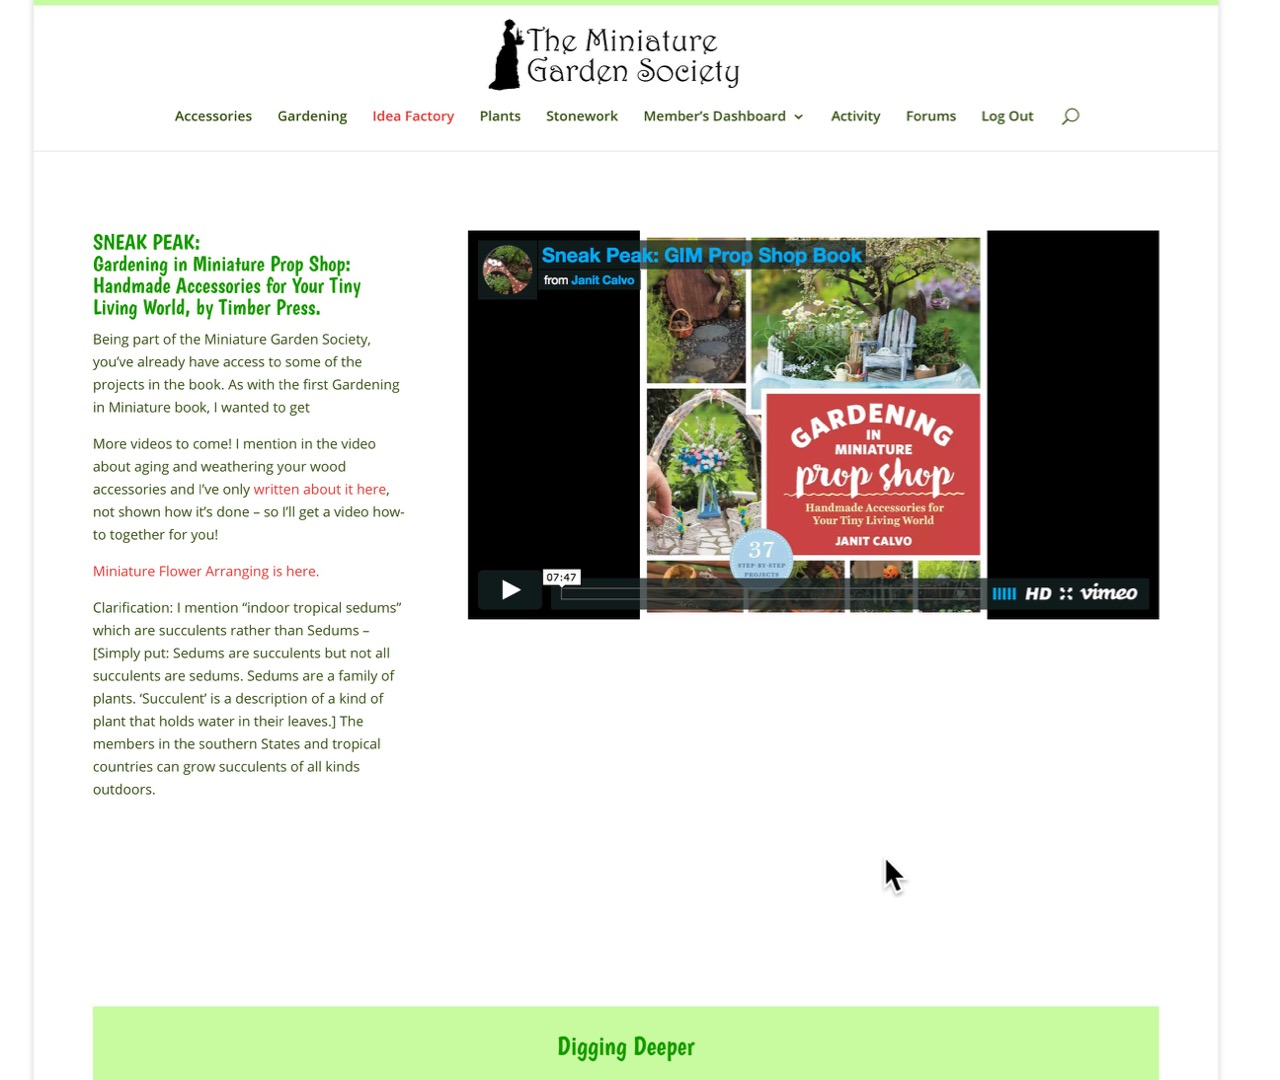 Miniature Garden Society - the best website for Miniature Gardening on the Planet!